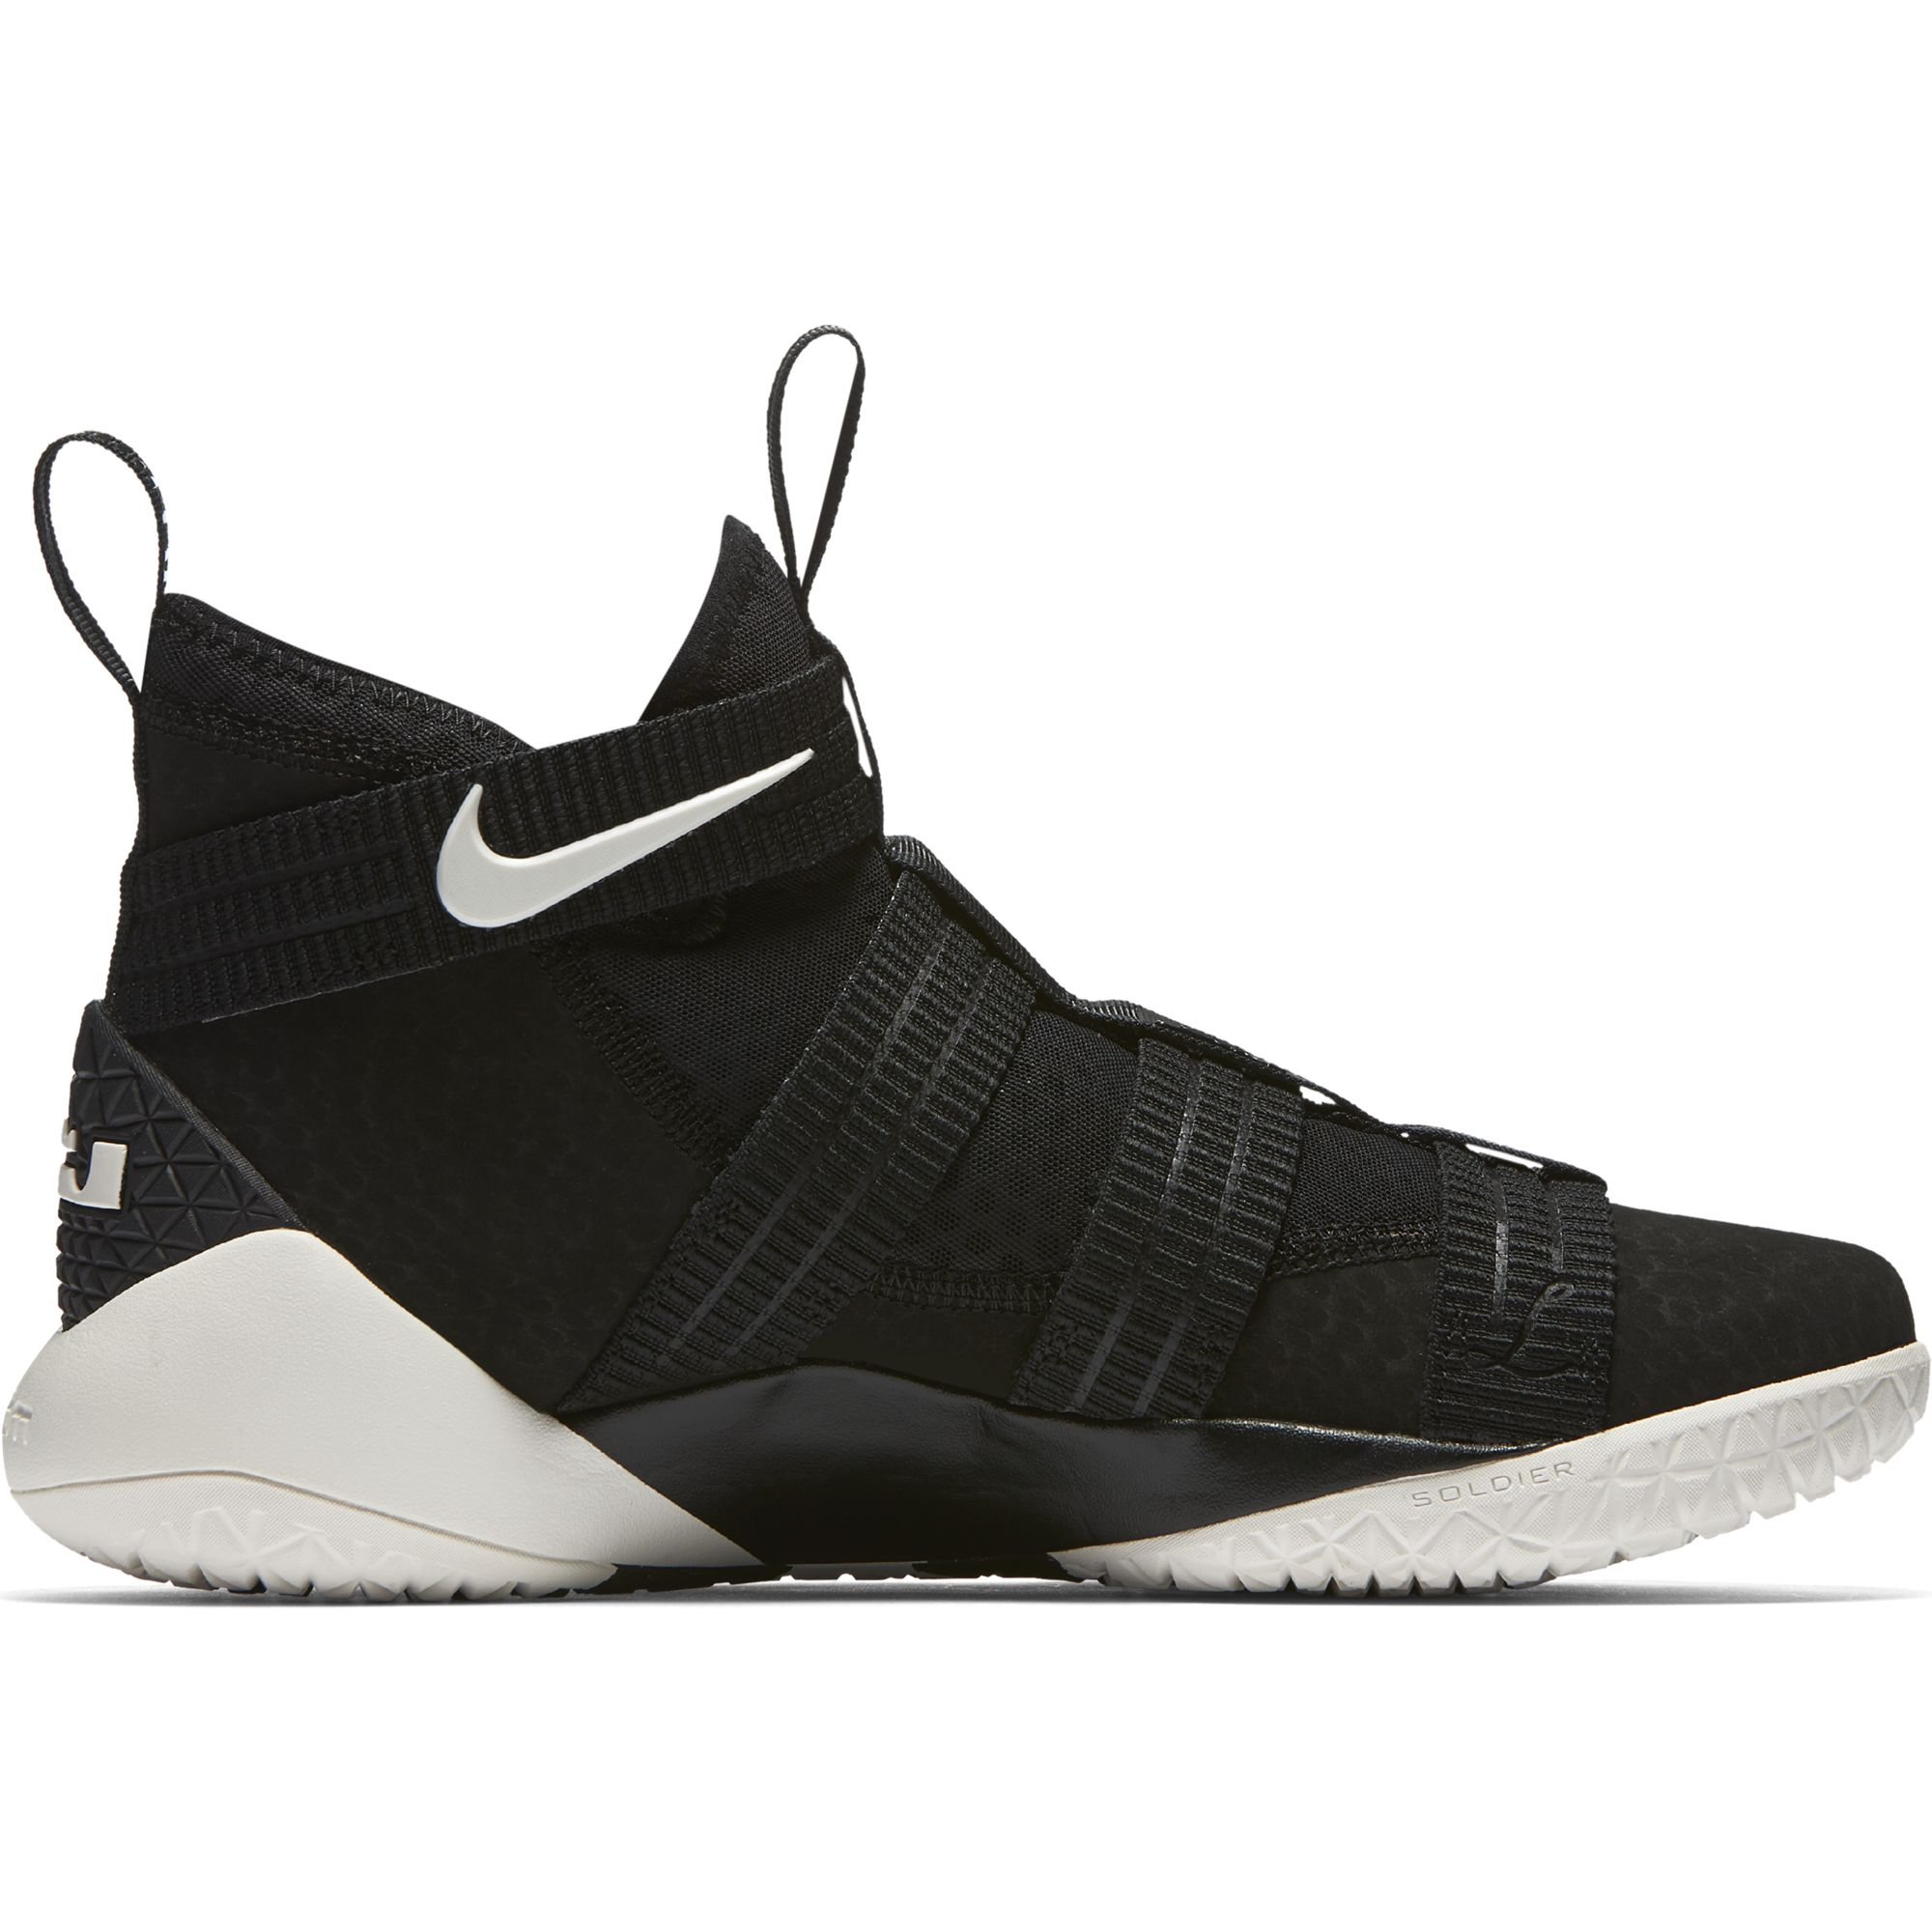 Nike Men\u0027s LeBron Soldier XI SFG Basketball Shoe BLACK/SAIL-RACER BLUE 7.5  - Walmart.com